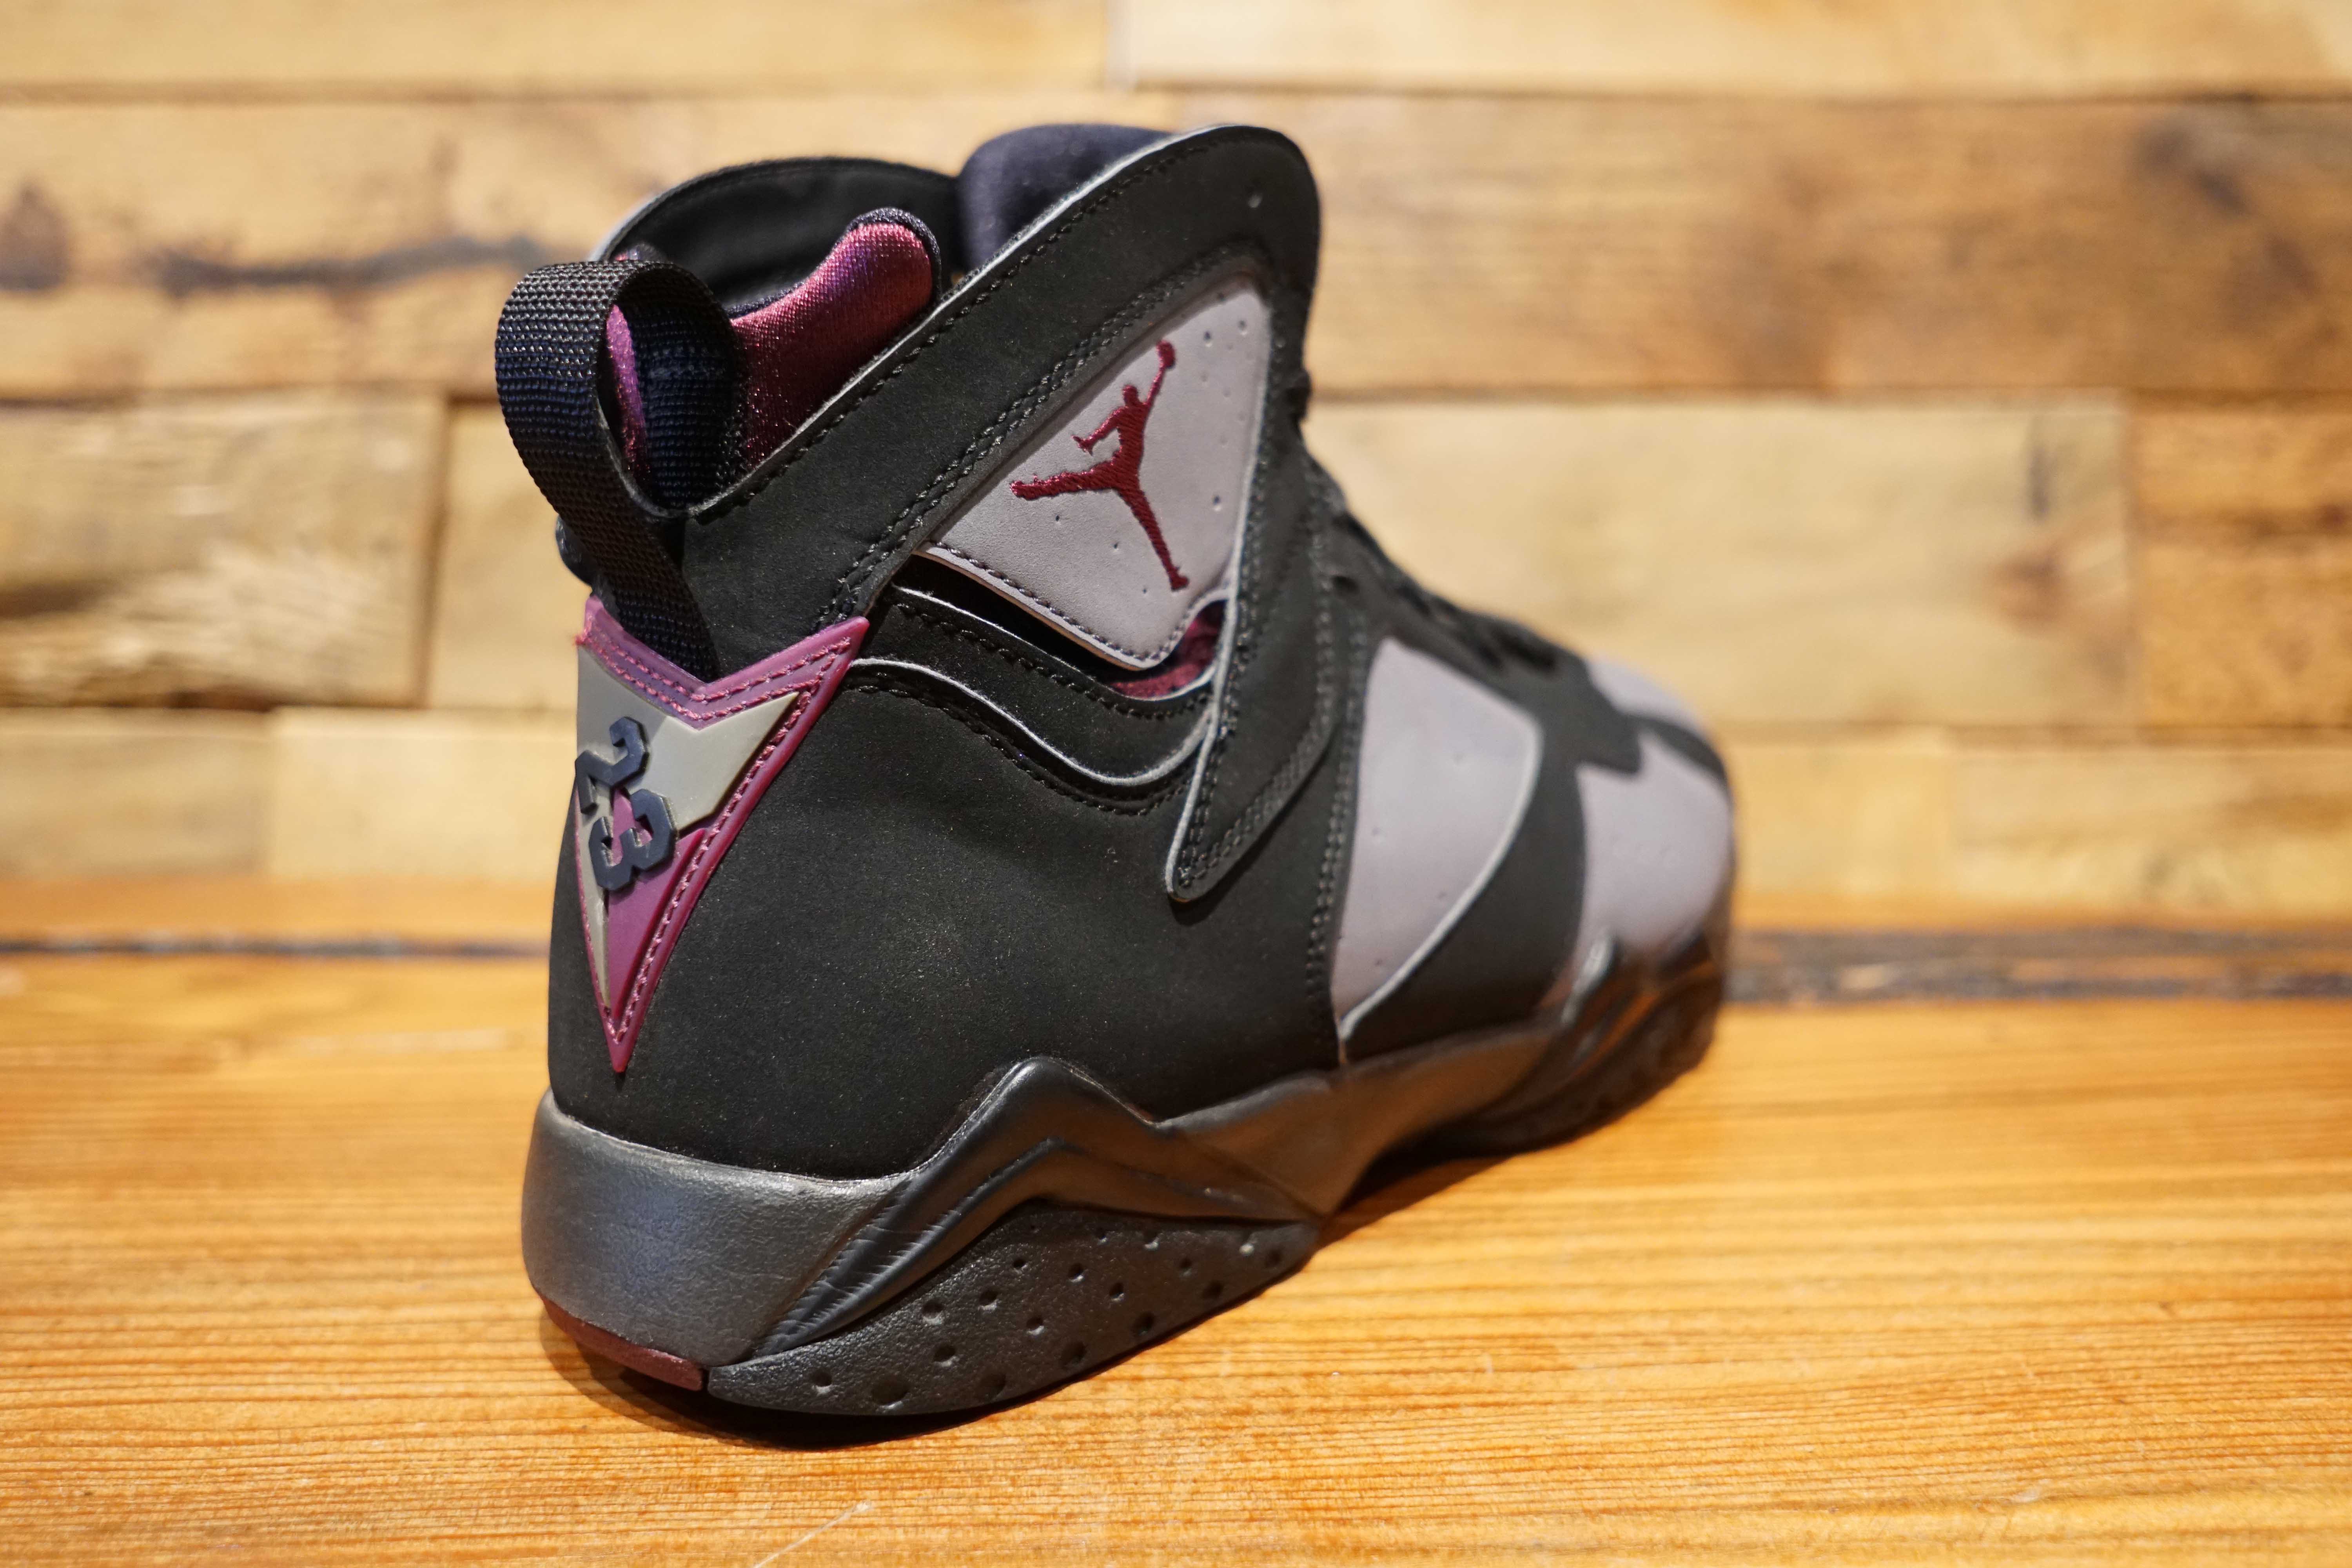 info for 0a0e4 2a727 Air-Jordan-7-Retro-BORDEAUX-2015-Used-Original-